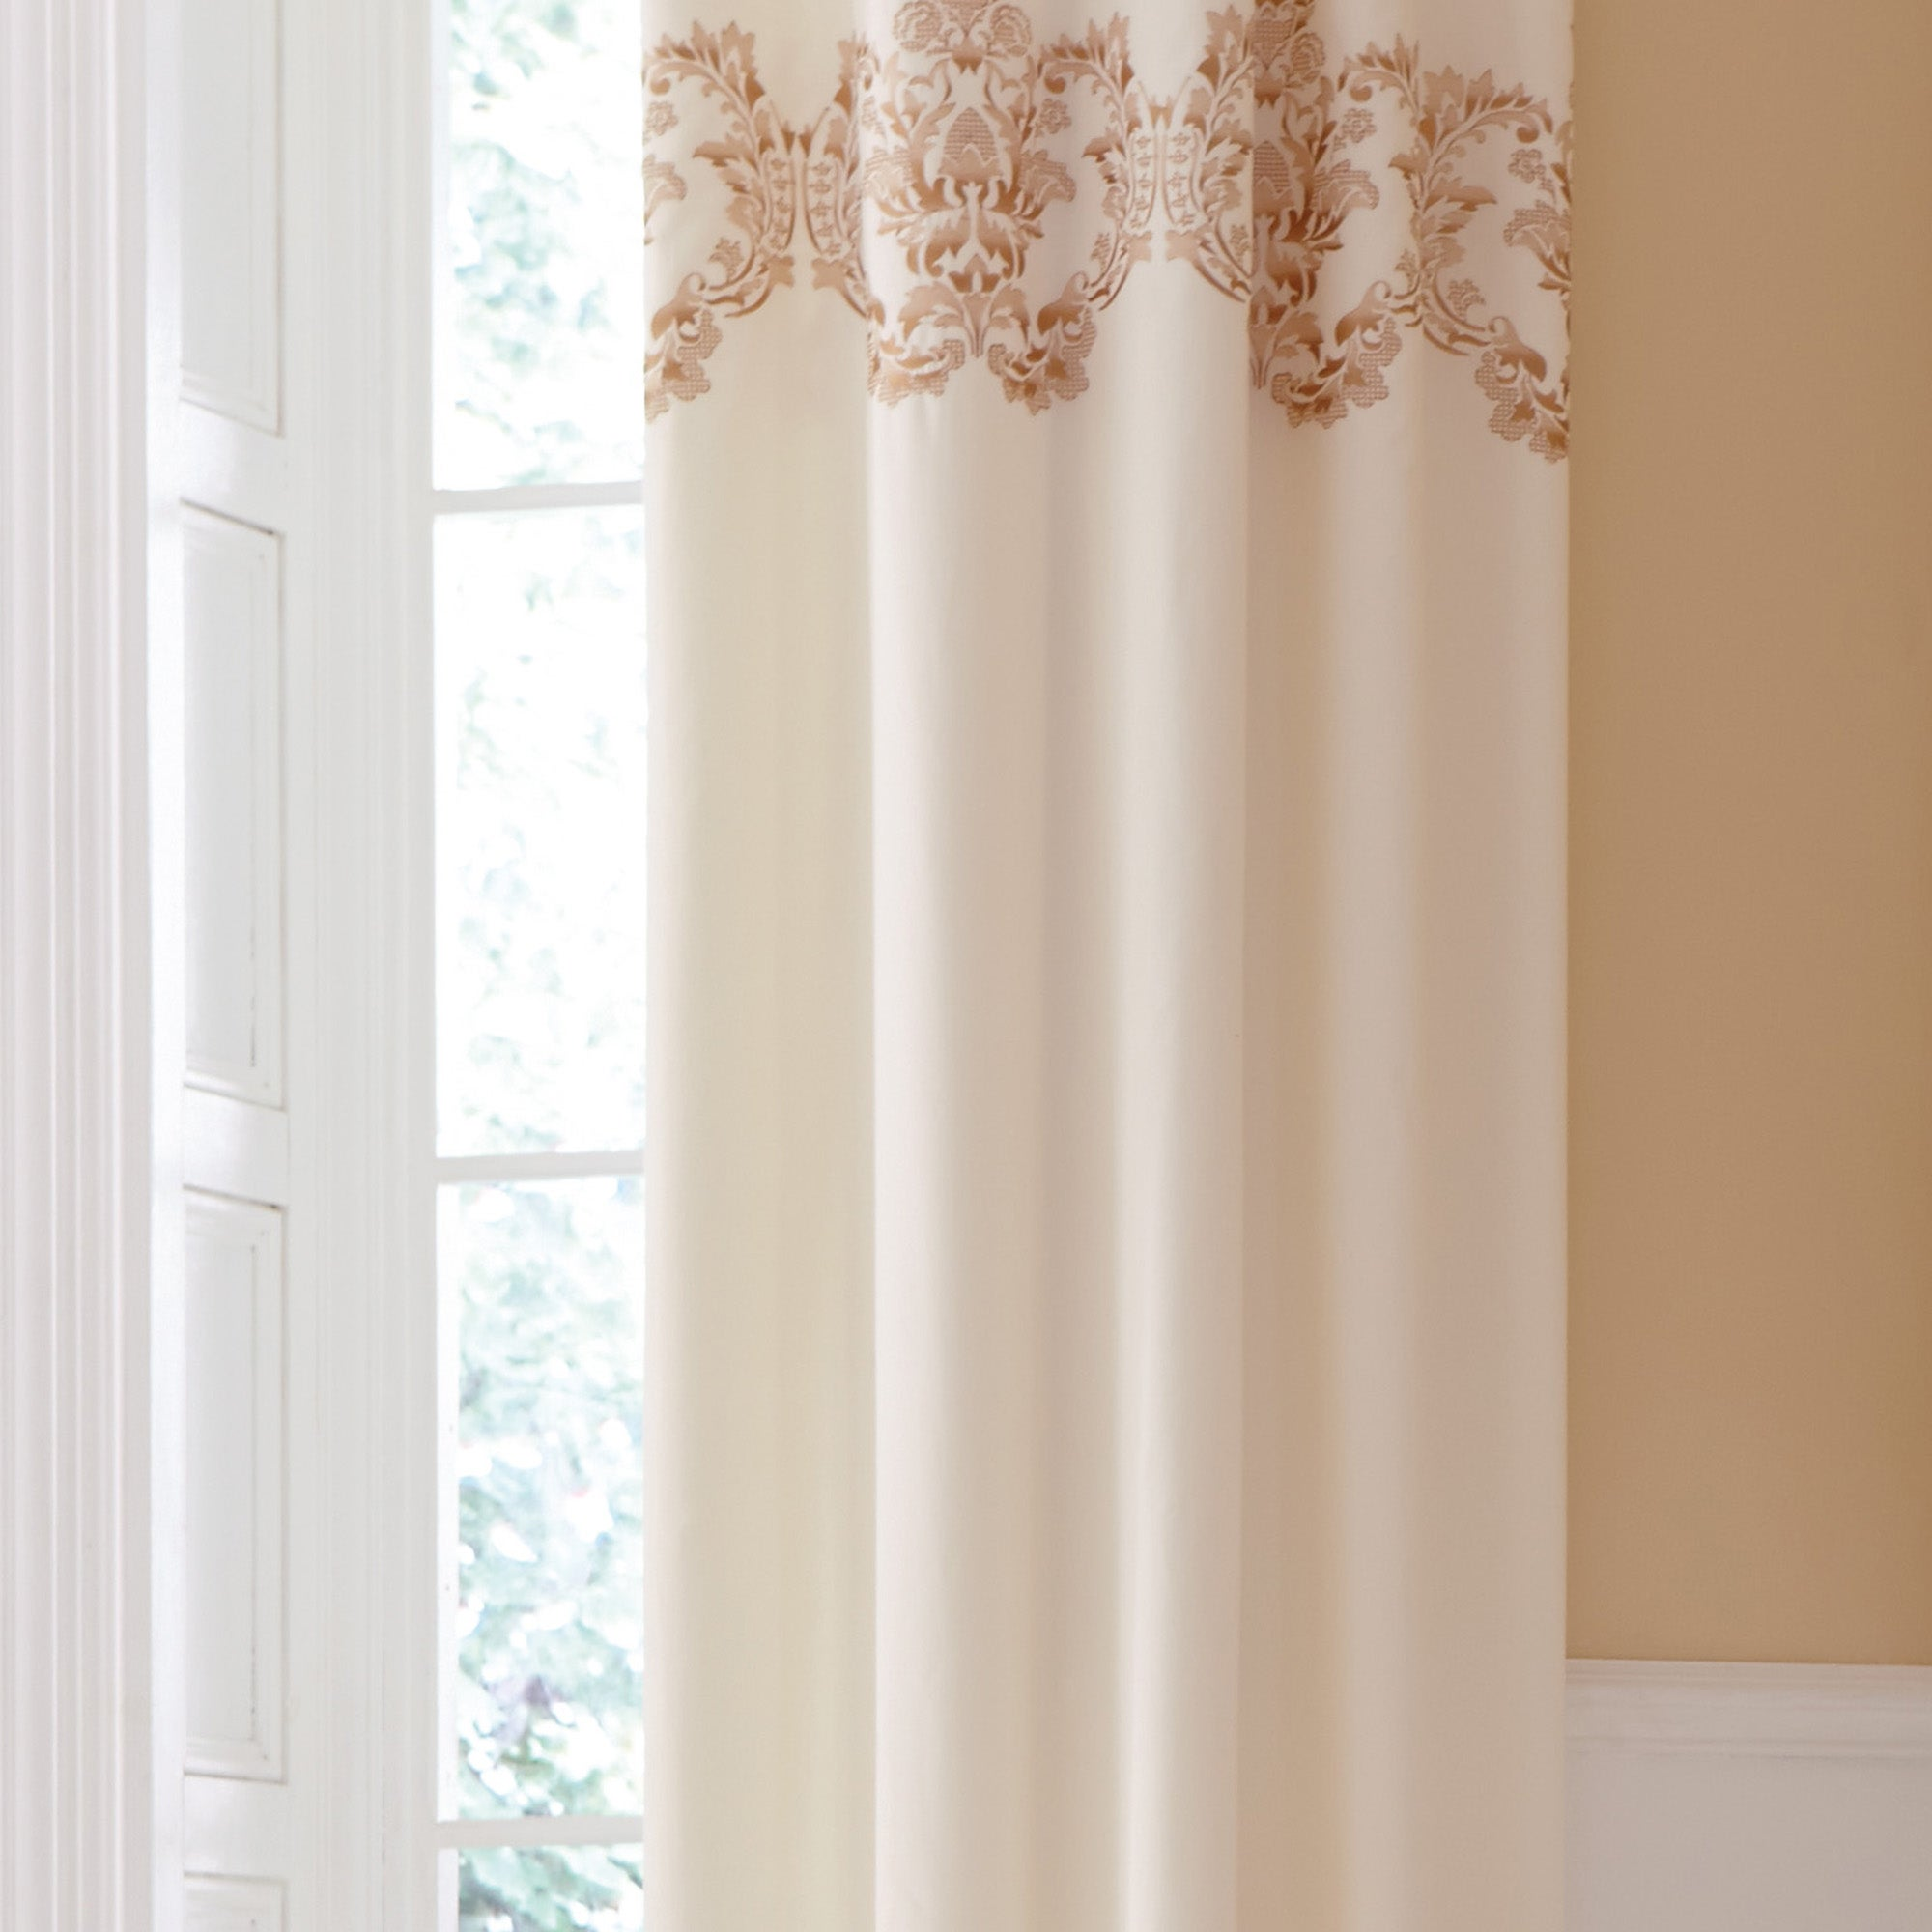 Gold Nina Thermal Eyelet Curtains